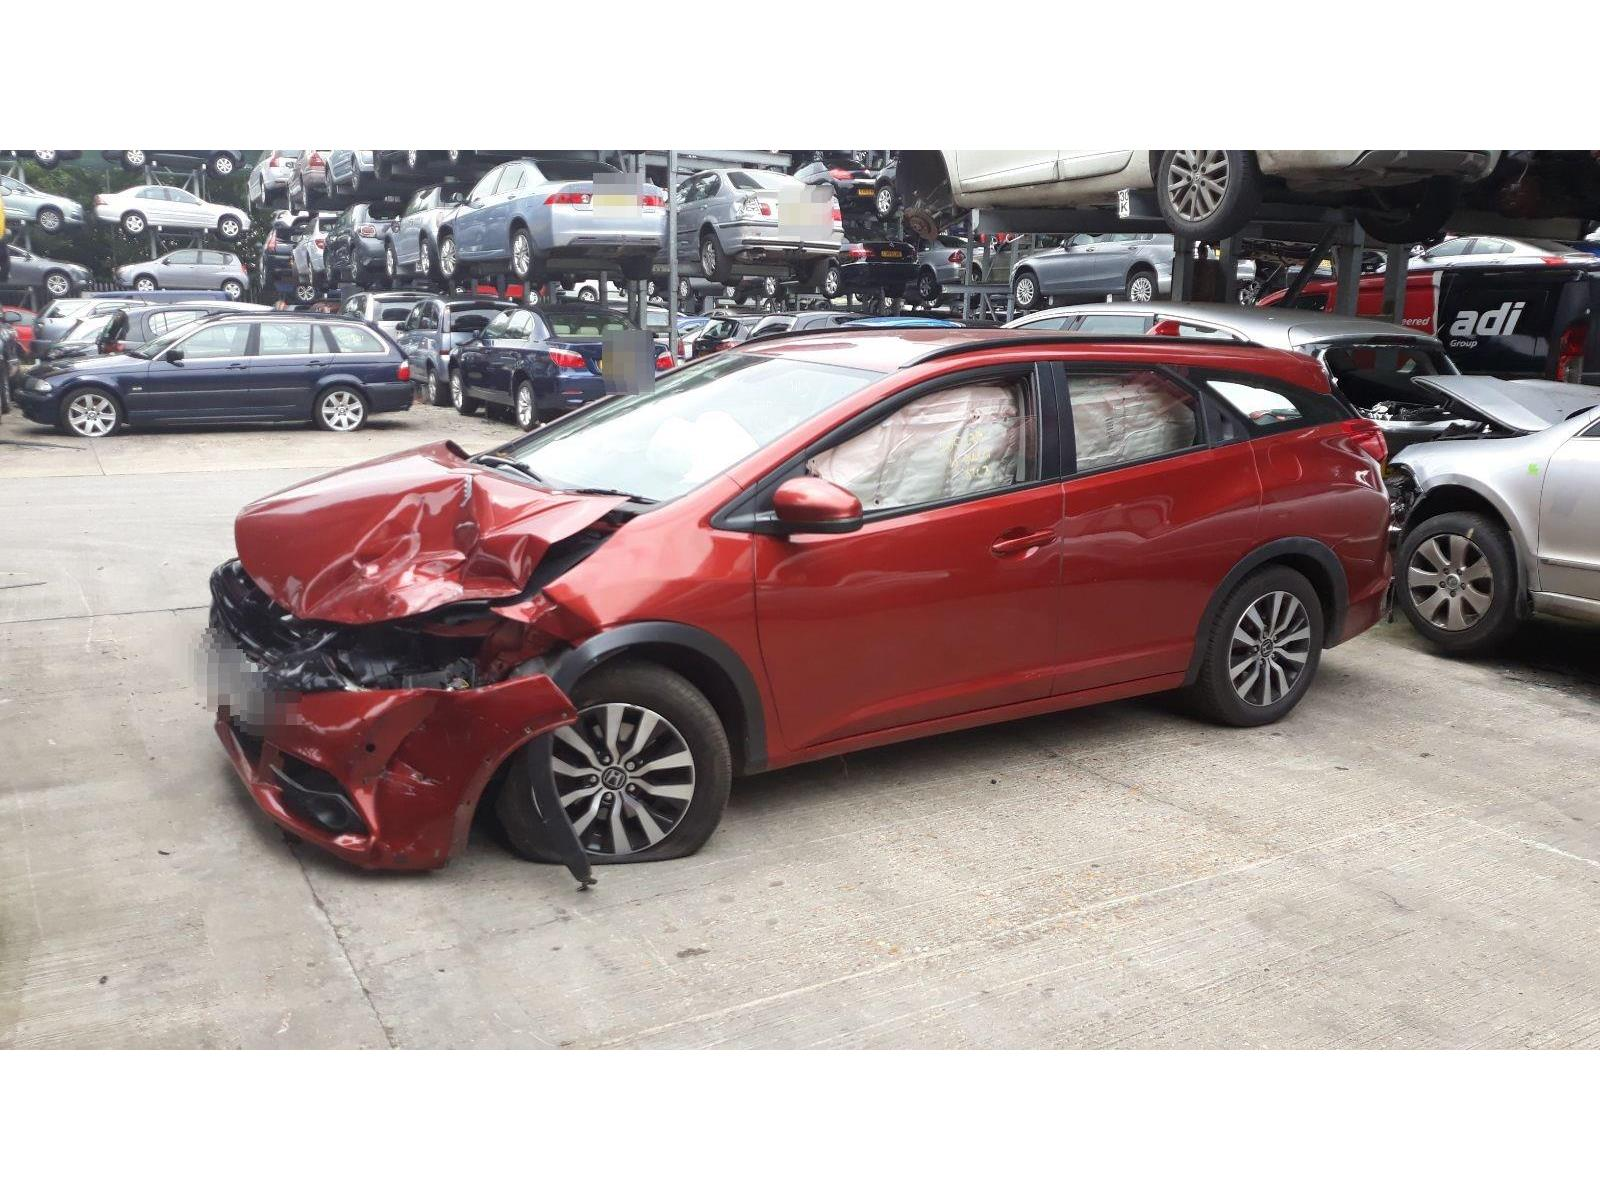 2014 Honda Civic 2012 To 2015 SE Plus i-DTEC 1 6l Manual